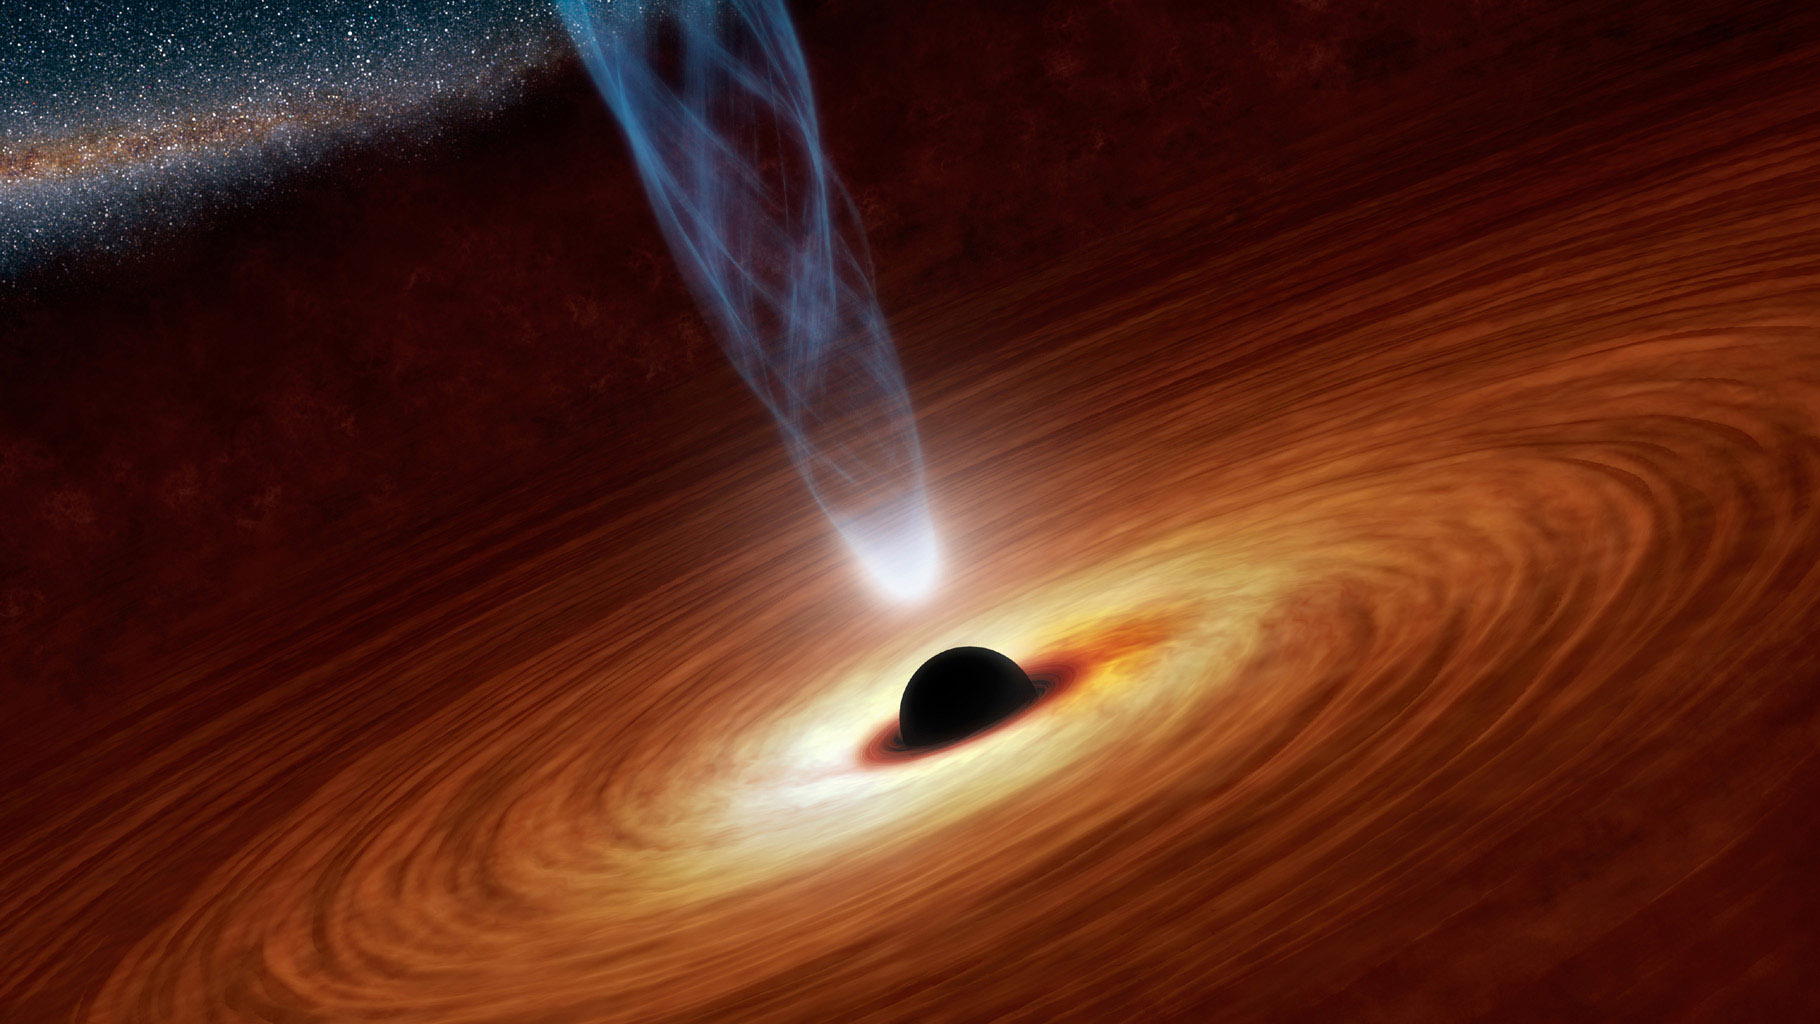 black hole jpl.nasa.gov image